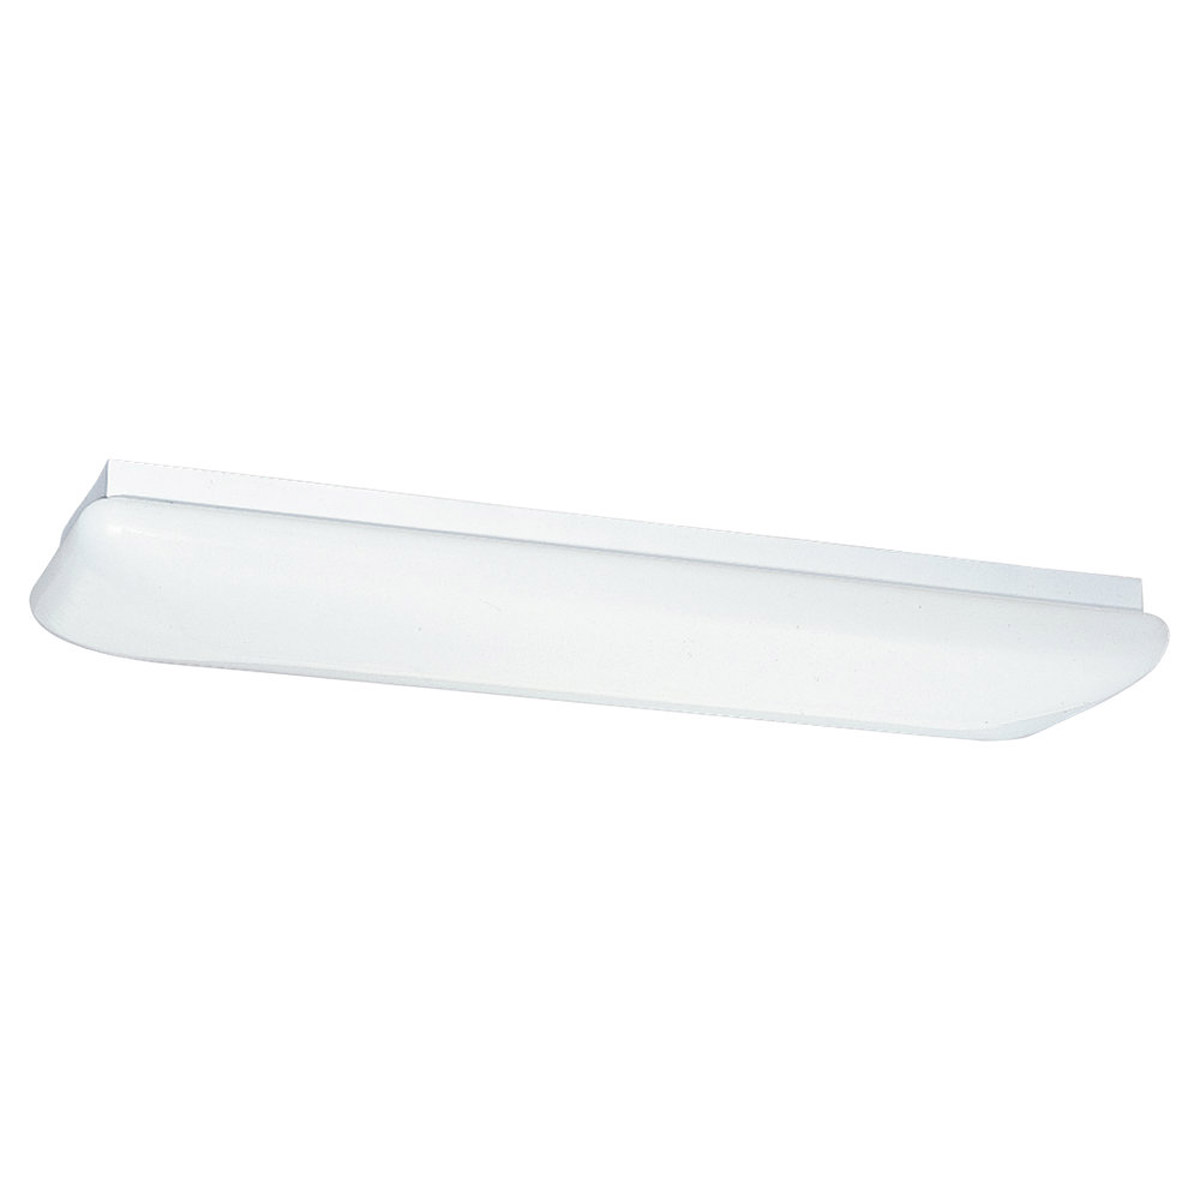 Sea Gull Lighting Signature Fluorescent Trim Only in White Plastic 5912-68 photo